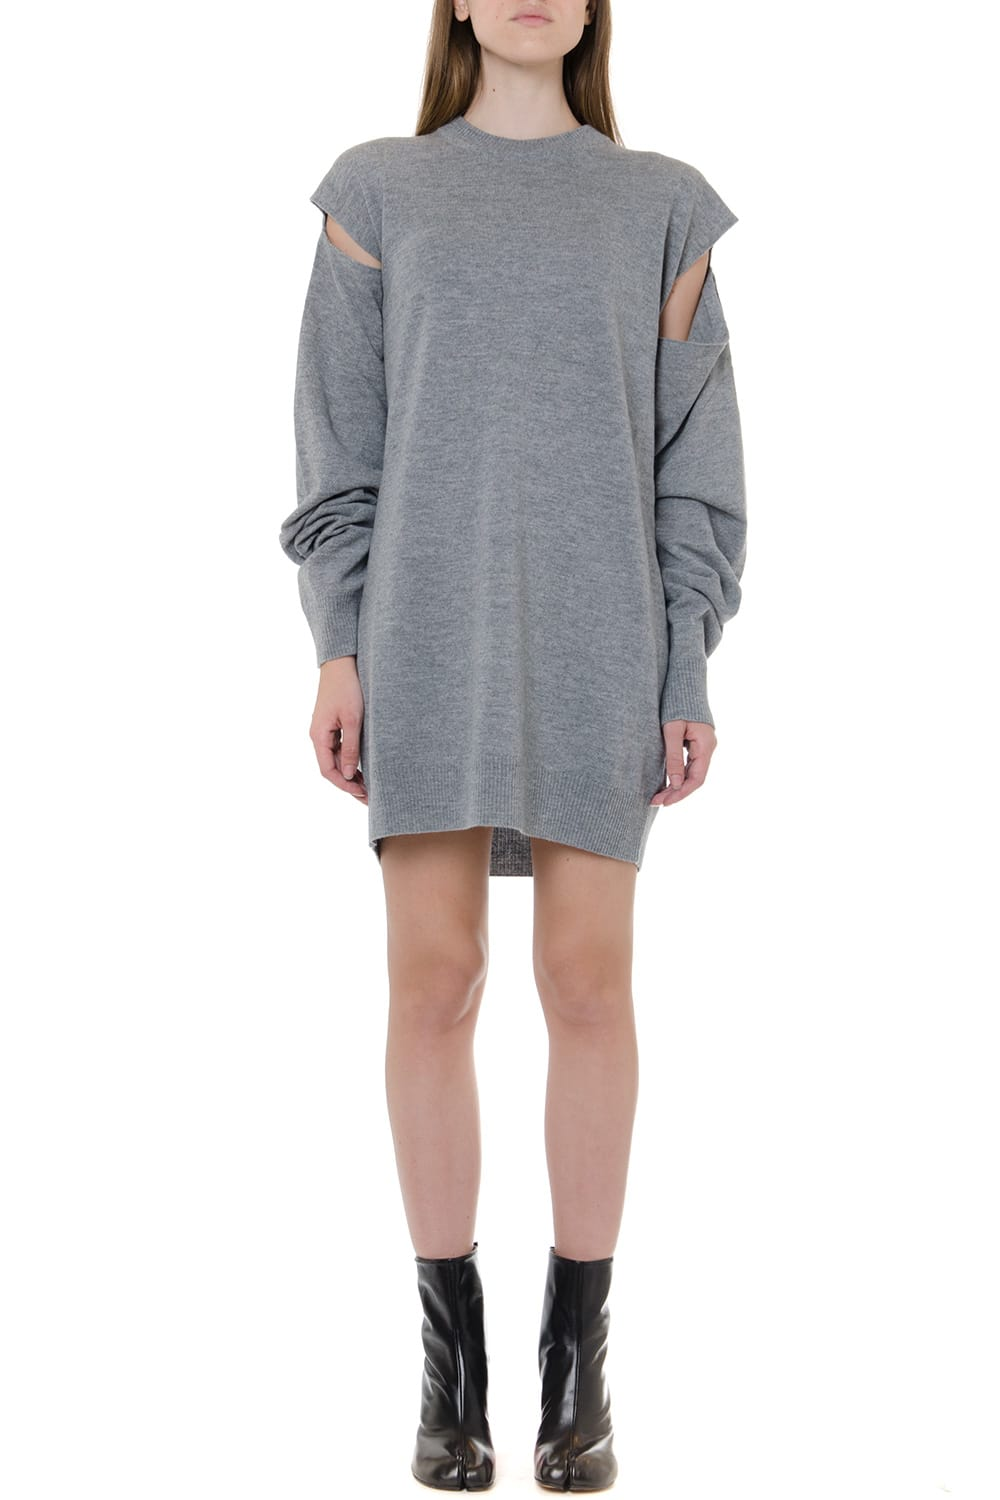 Maison Margiela Grey Wool And Cashmere Dress With Cut Out Details